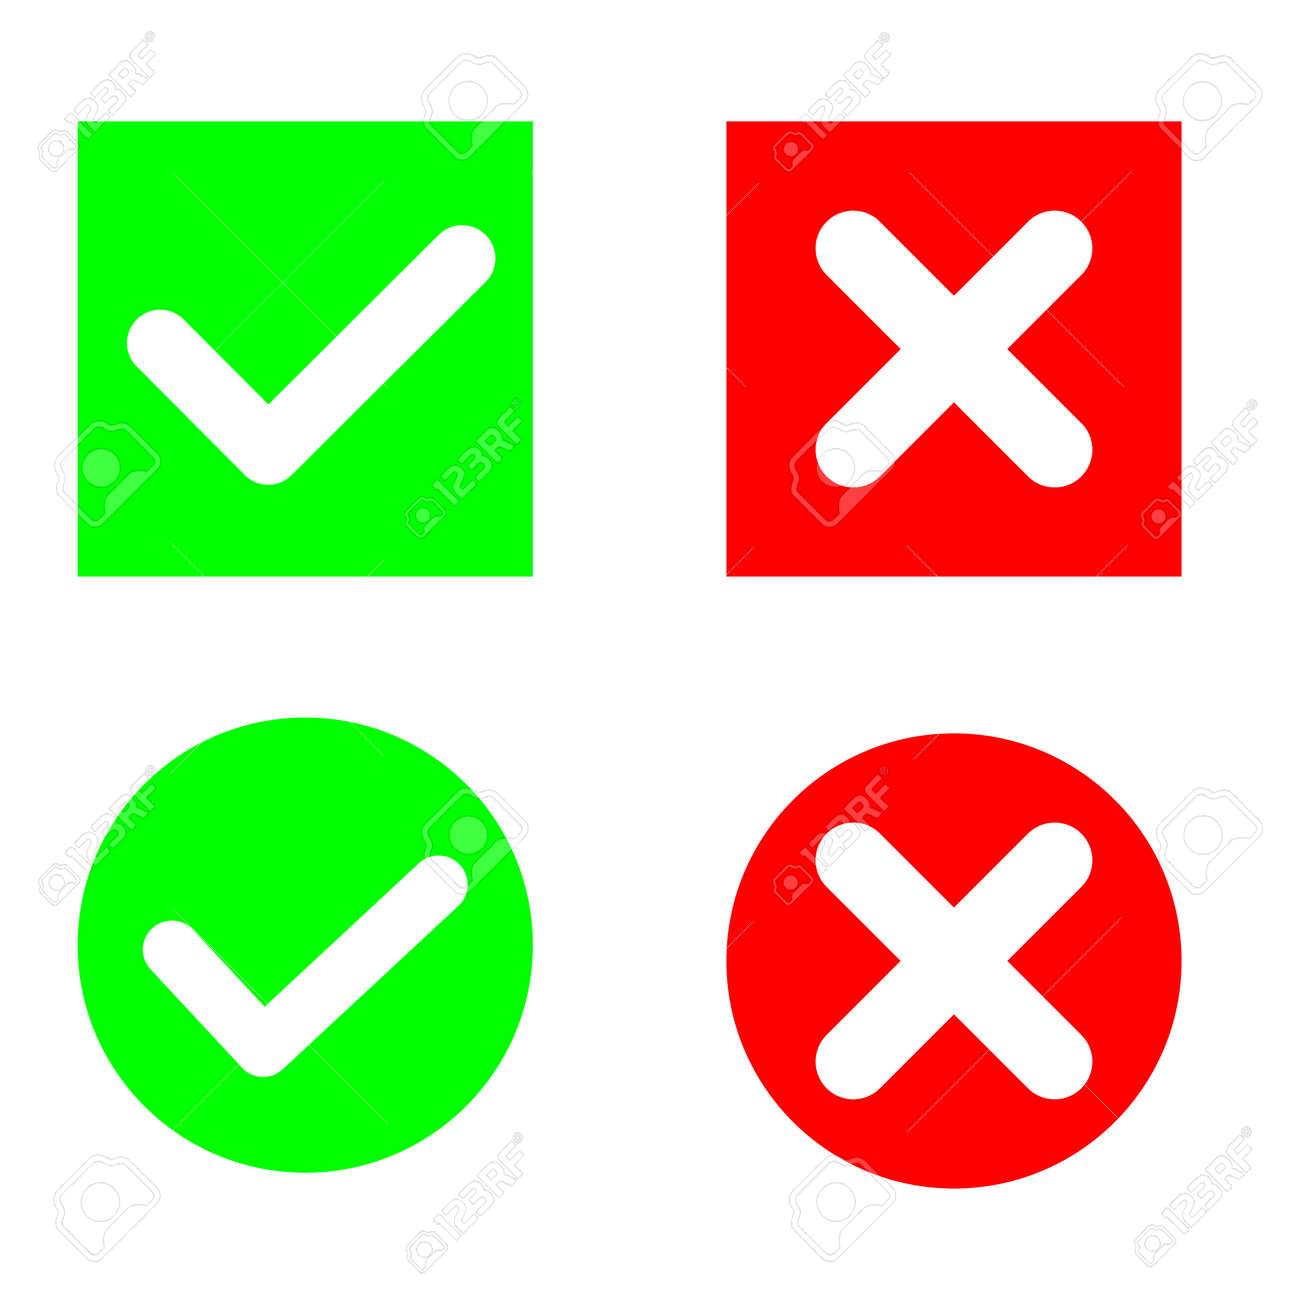 Approved illustration symbol collection, check mark list icons vector set. agree sign. - 165393859